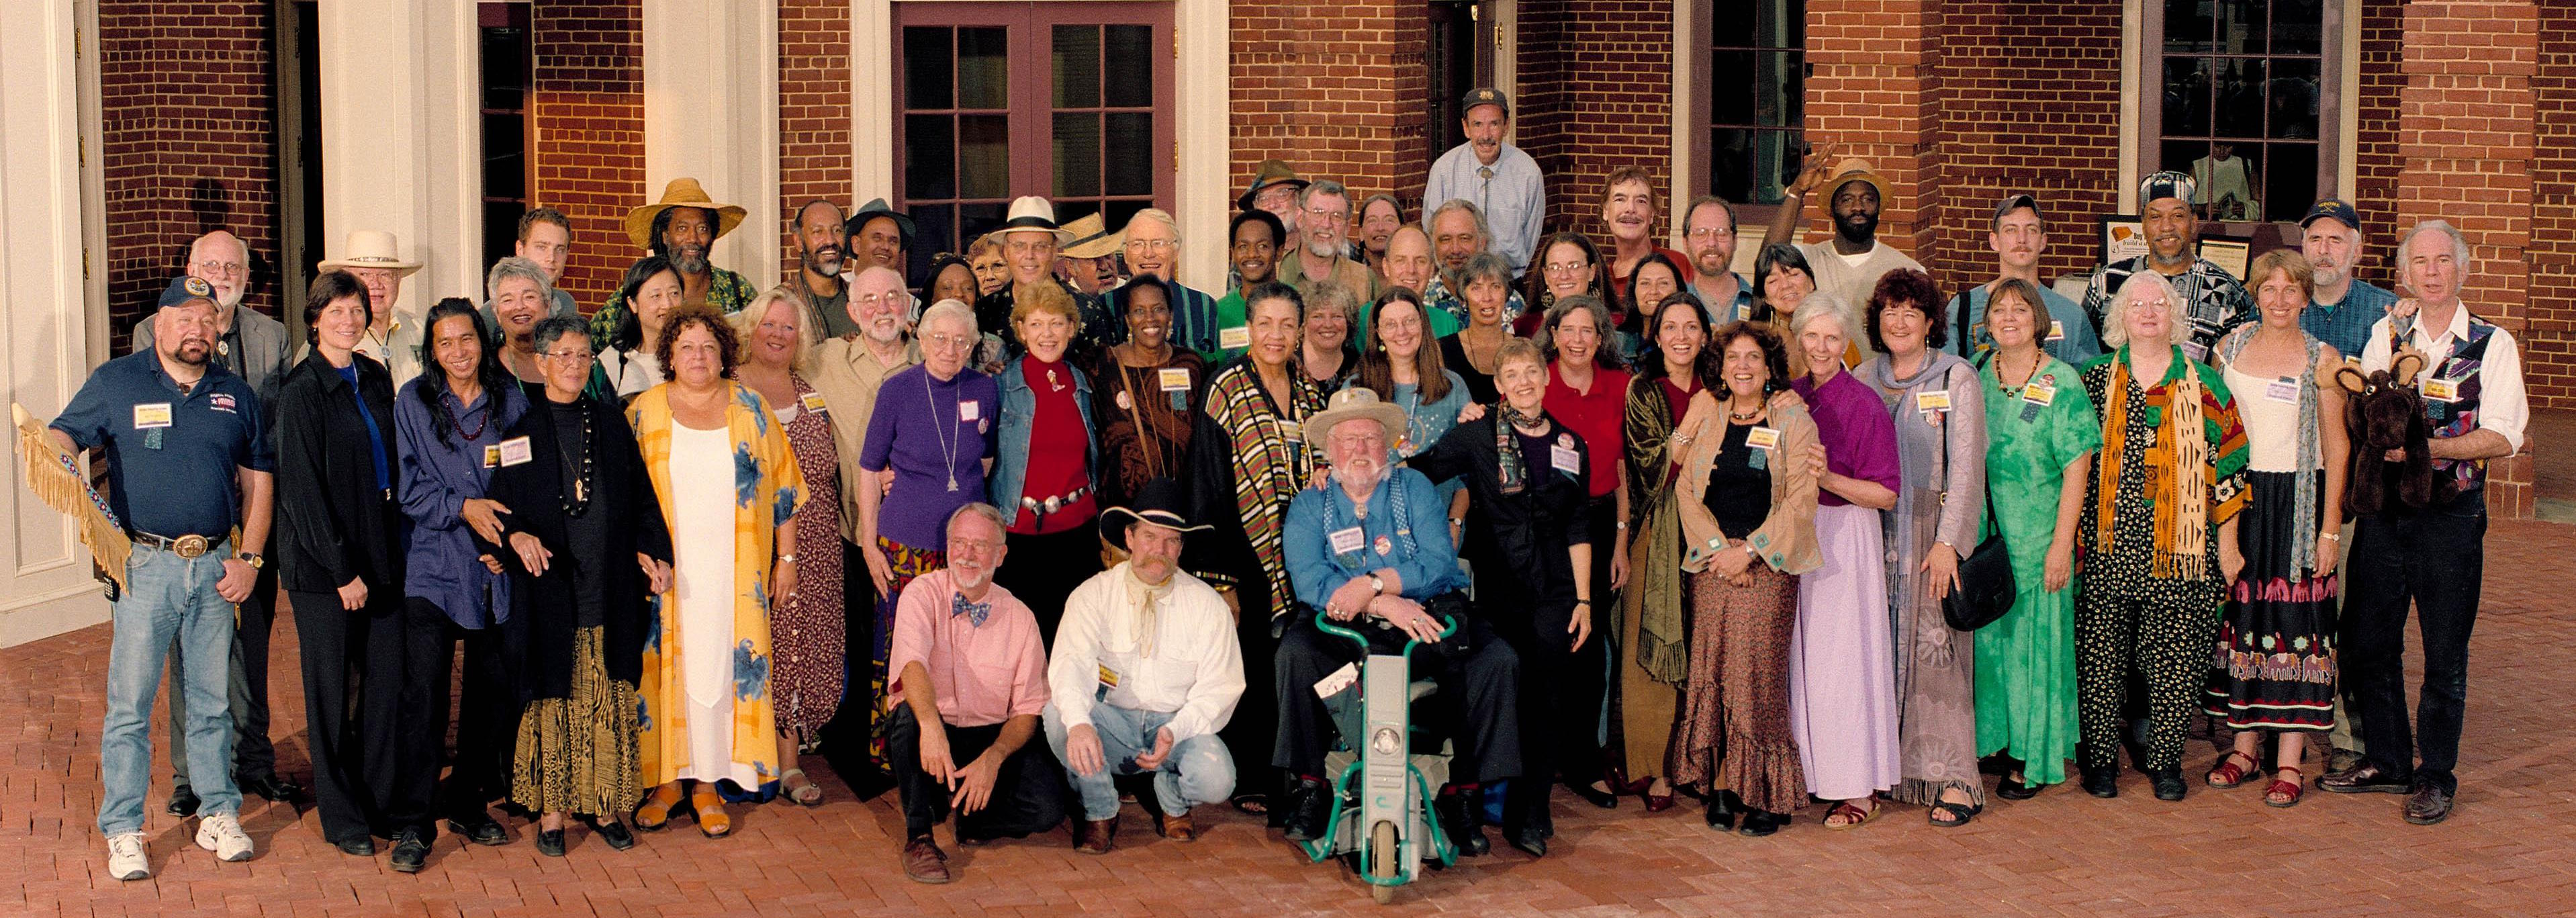 Reunion of all featured tellers from years past at the 30th Annual National Storytelling Festival